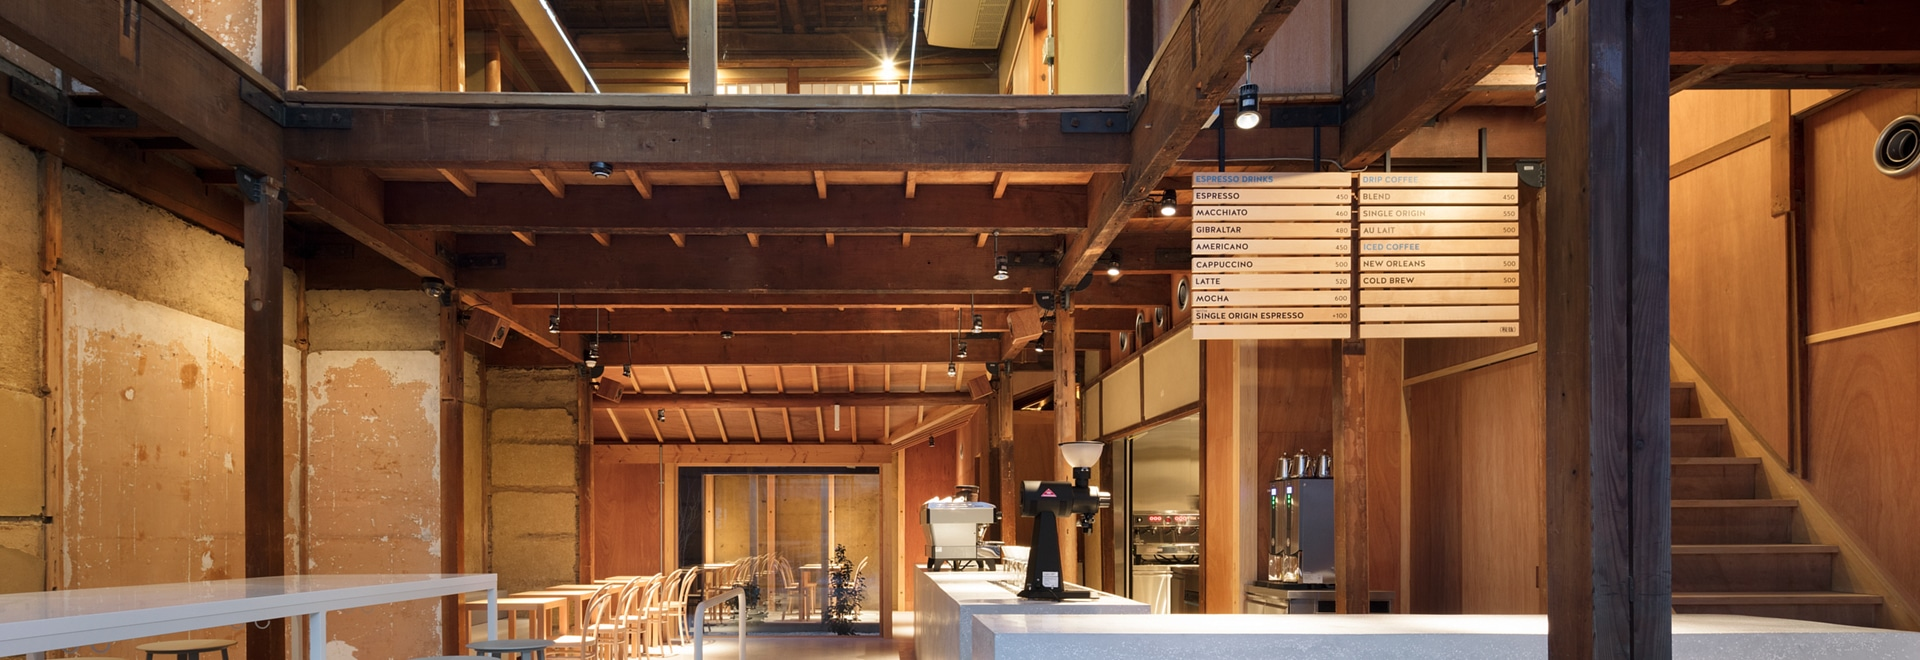 CAFÉ DE BLUE BOTTLE COFFEE KYOTO